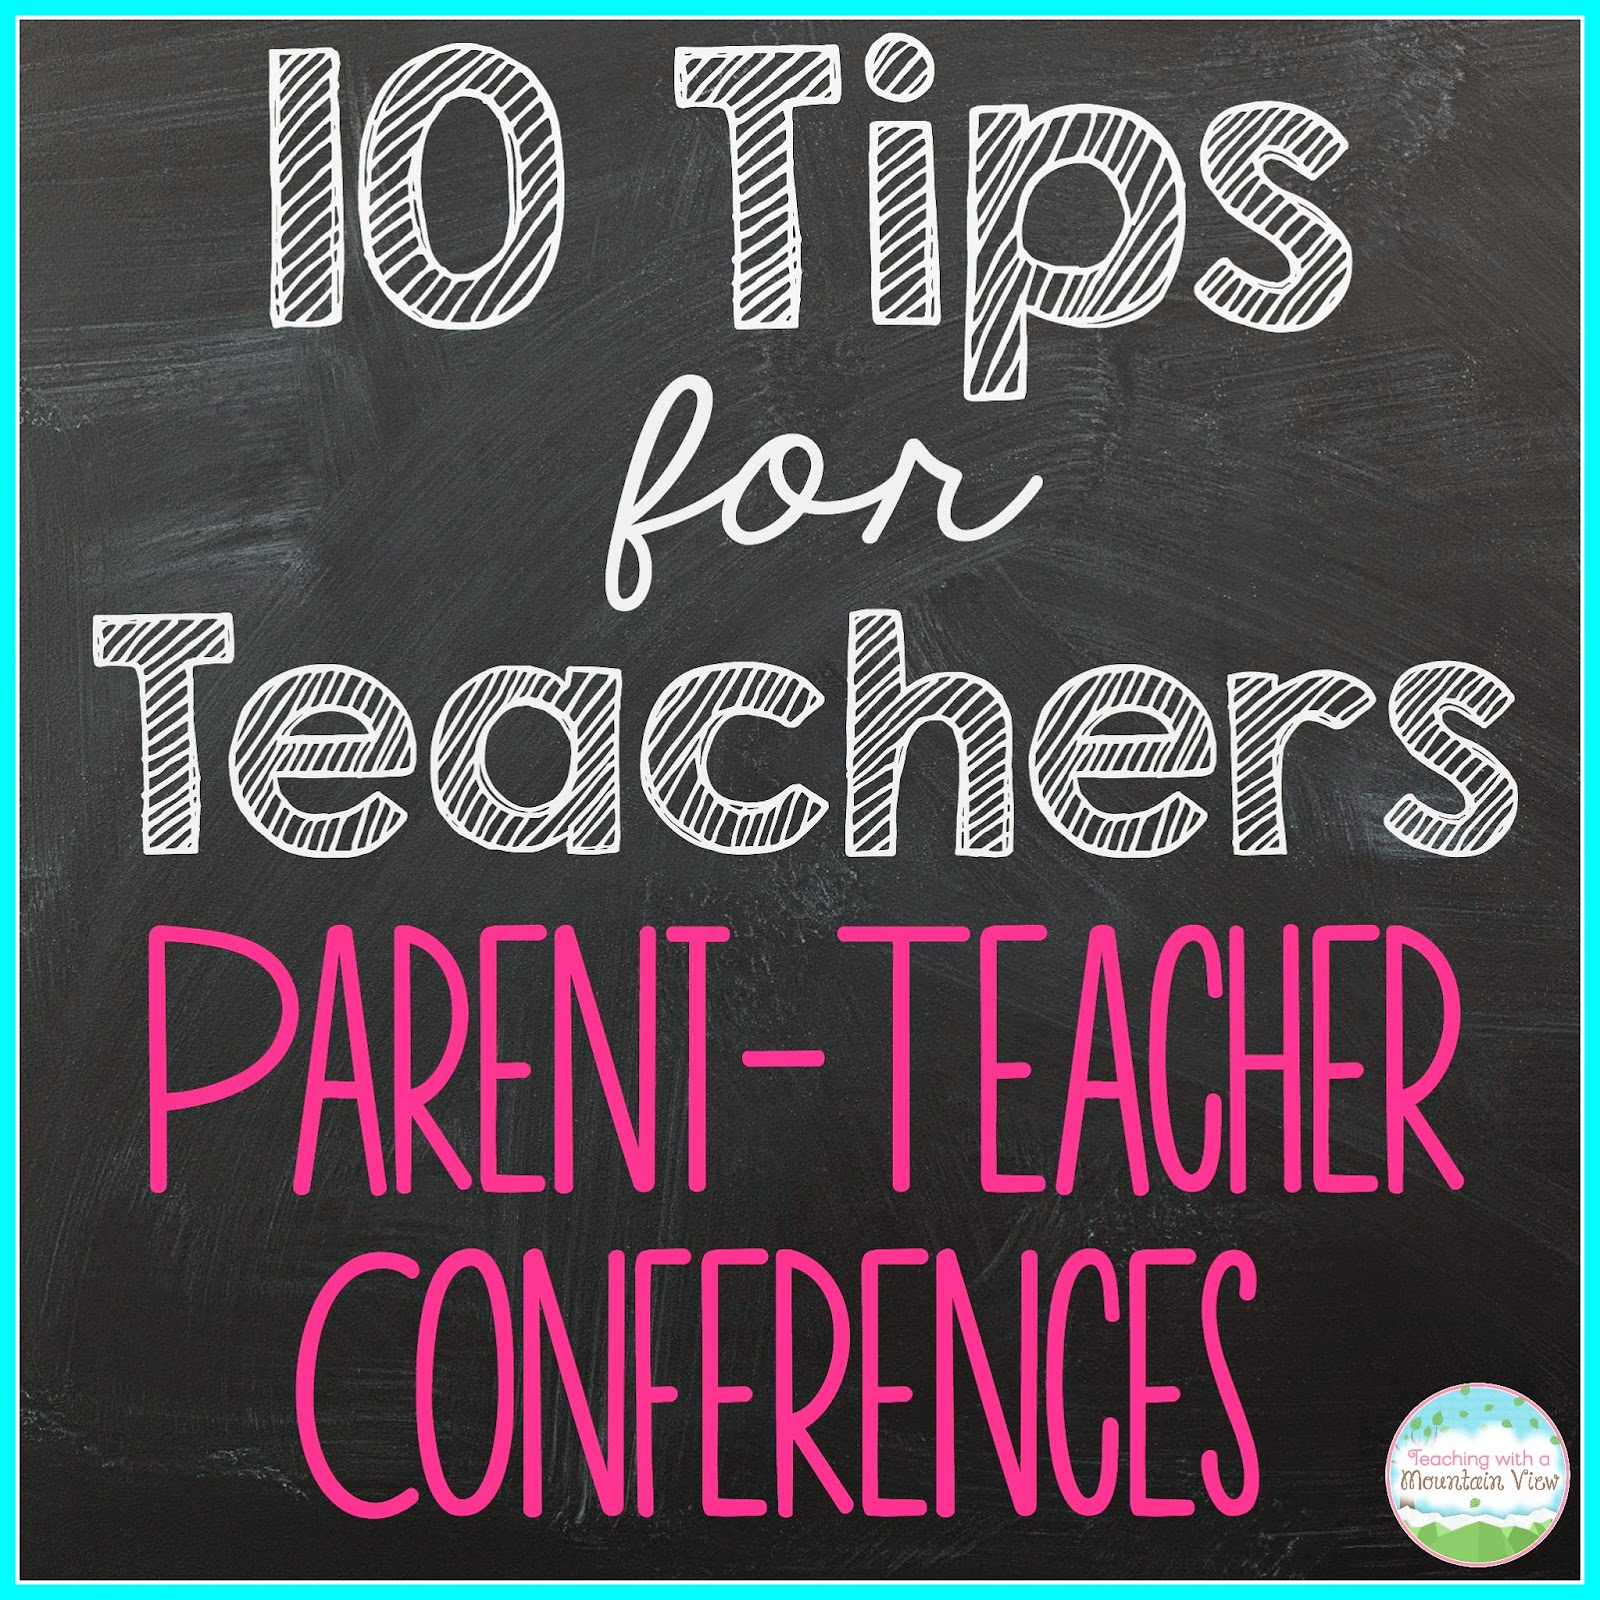 Teaching With a Mountain View: 10 Tips for Smooth Sailing Parent Teacher Conferences